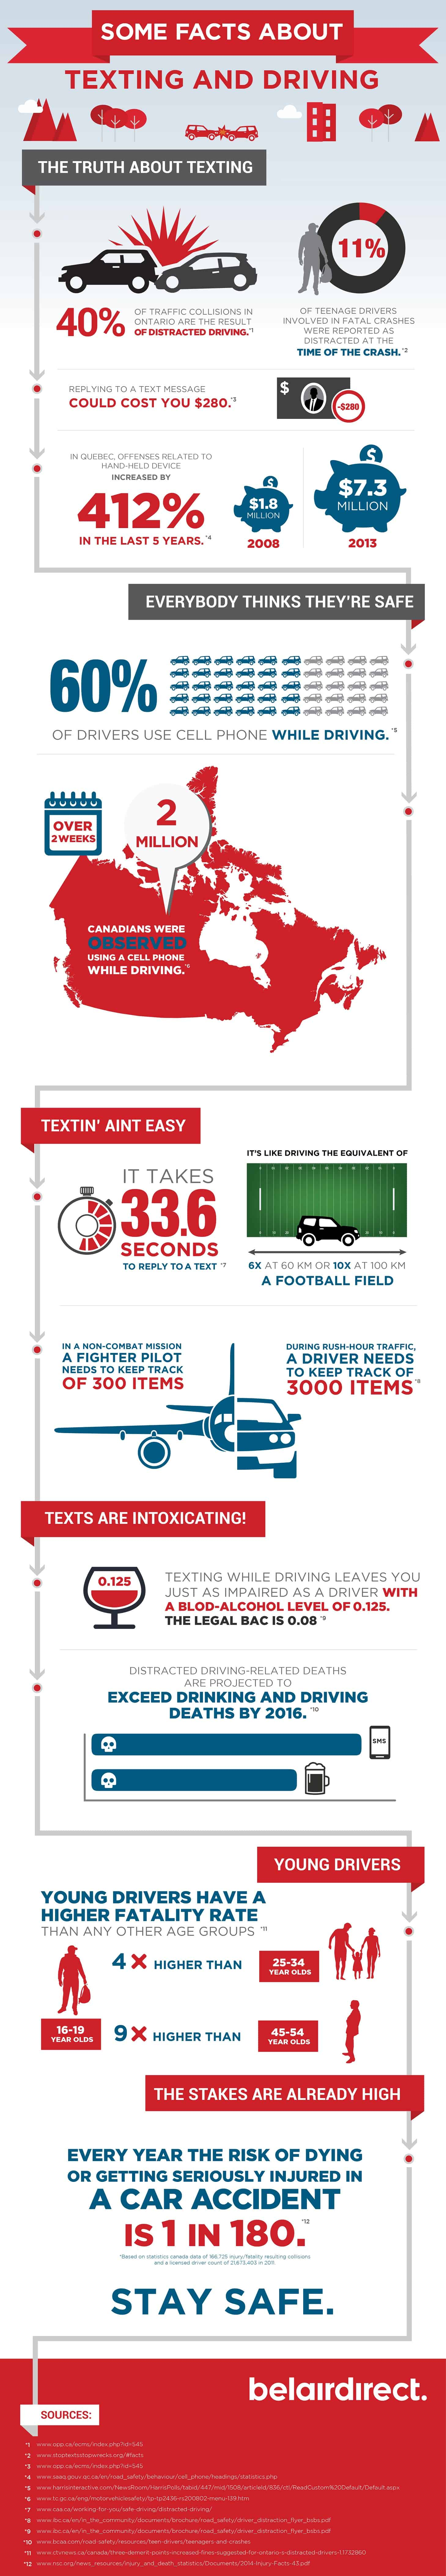 an infographic detailing the dangers of texting and driving